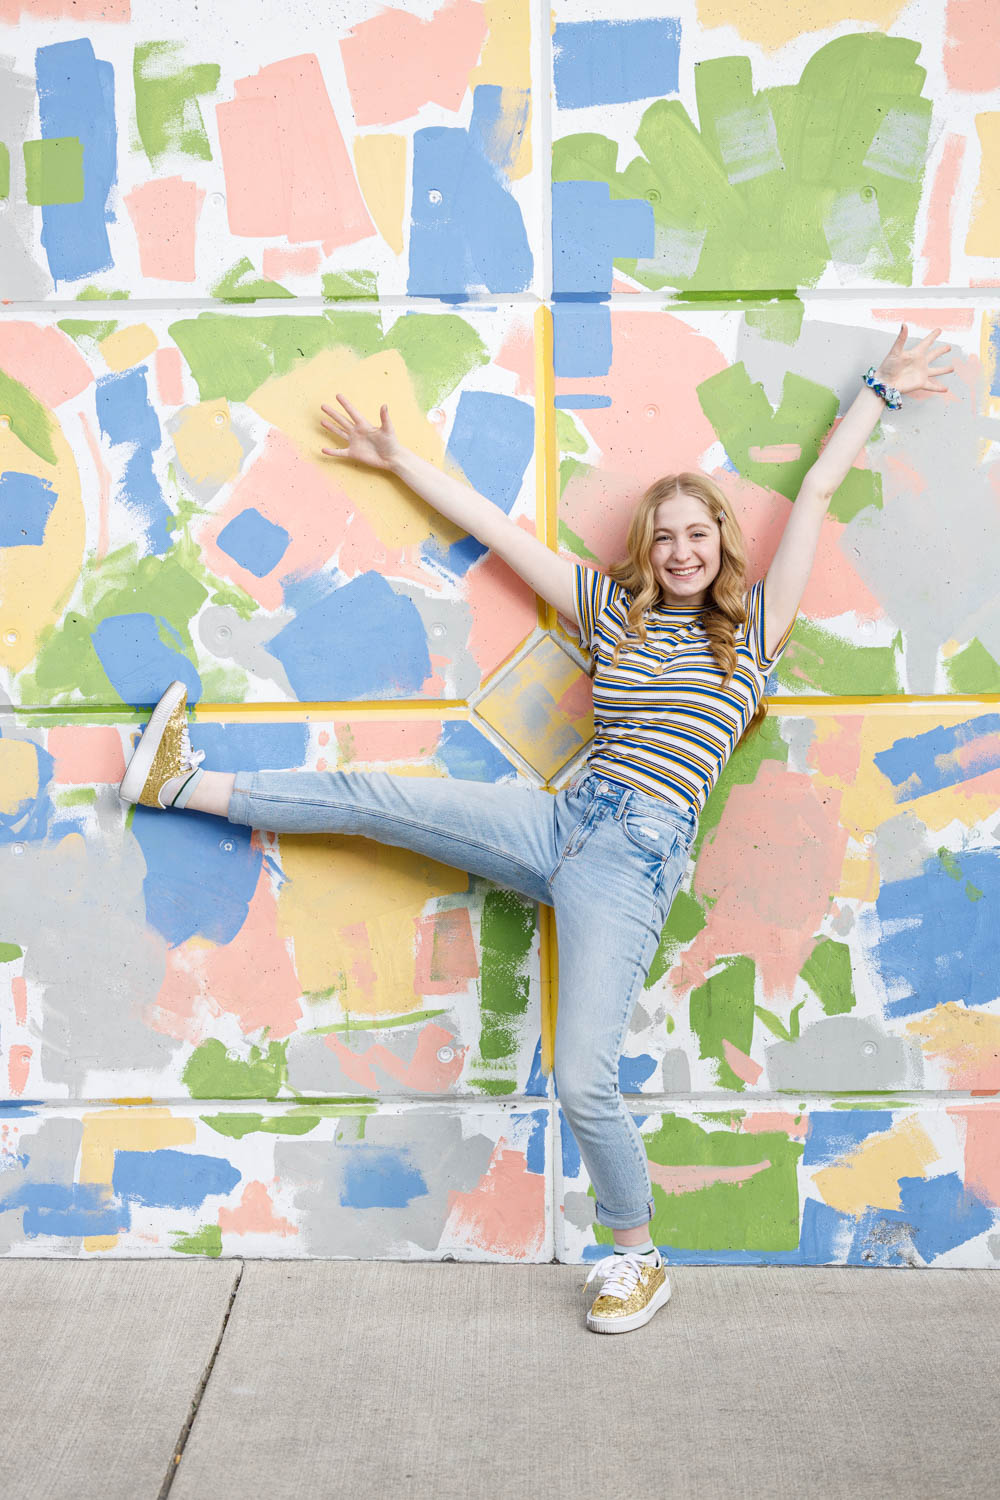 Graffiti backdrop with a fun pose